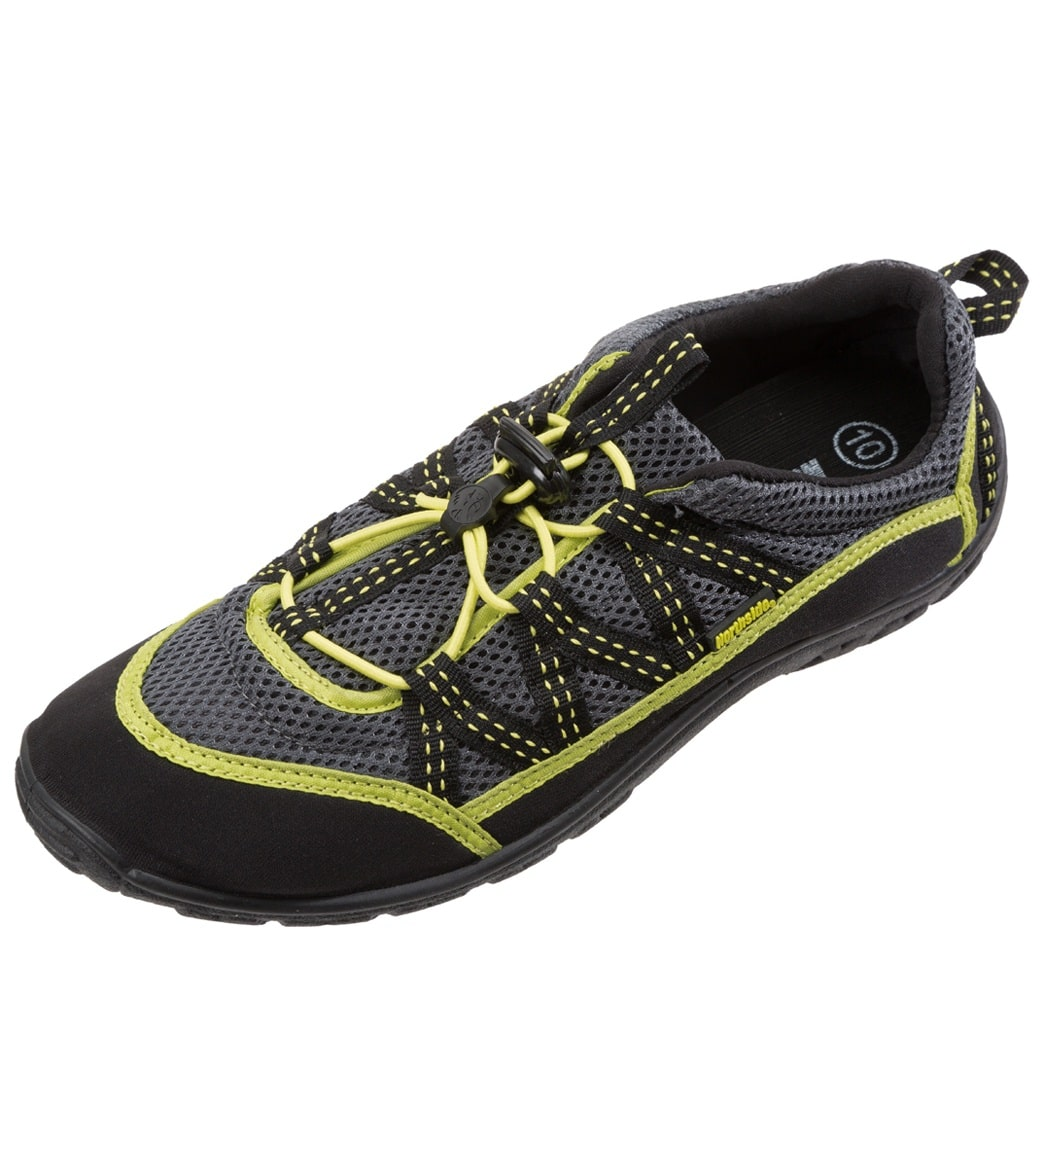 Best Mens Water Shoes